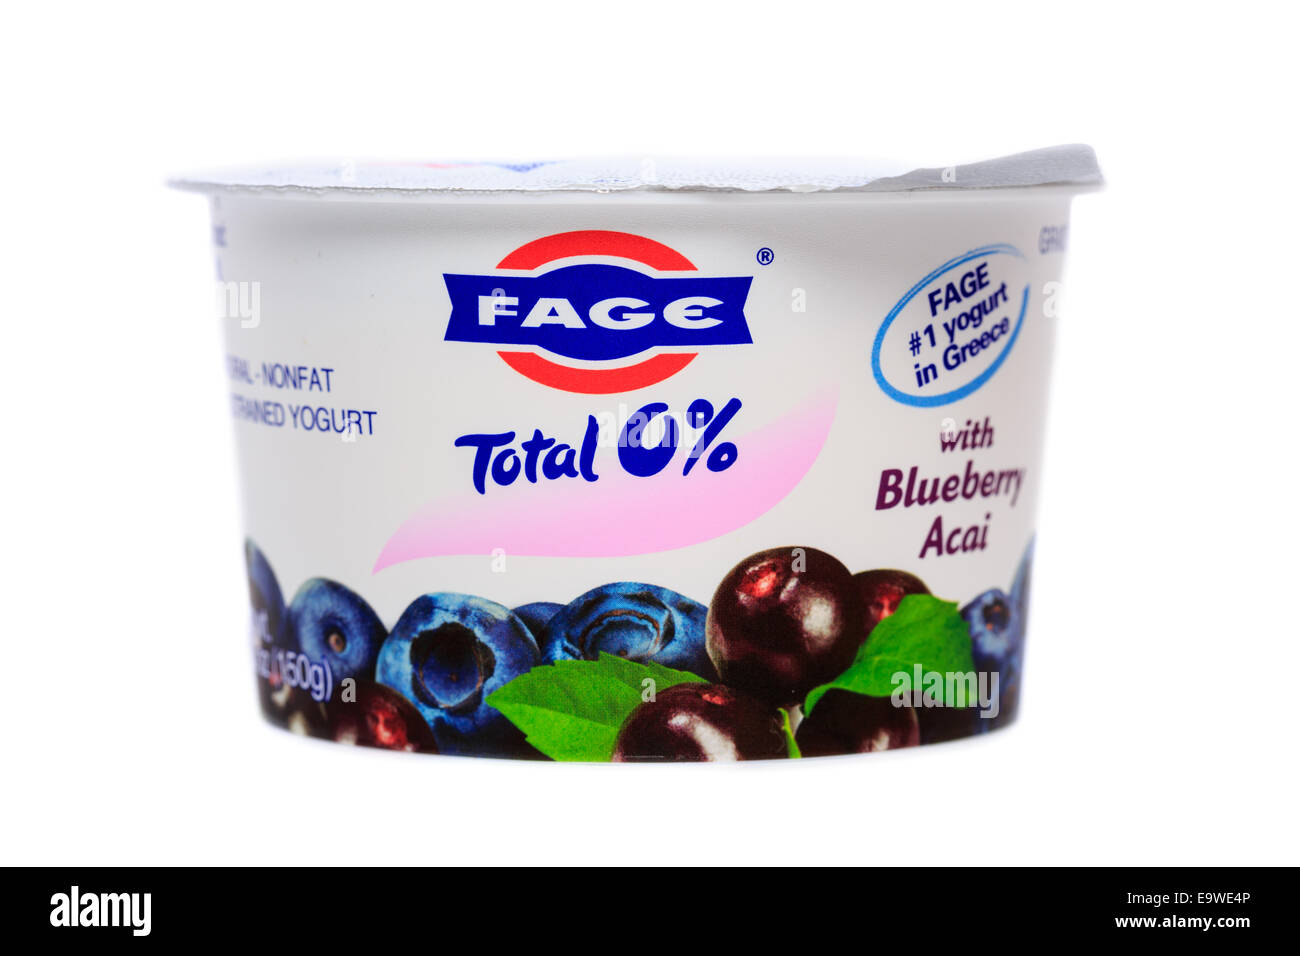 Fage Total 0% nonfat greek strained yogurt cup Blueberry Acai - Stock Image